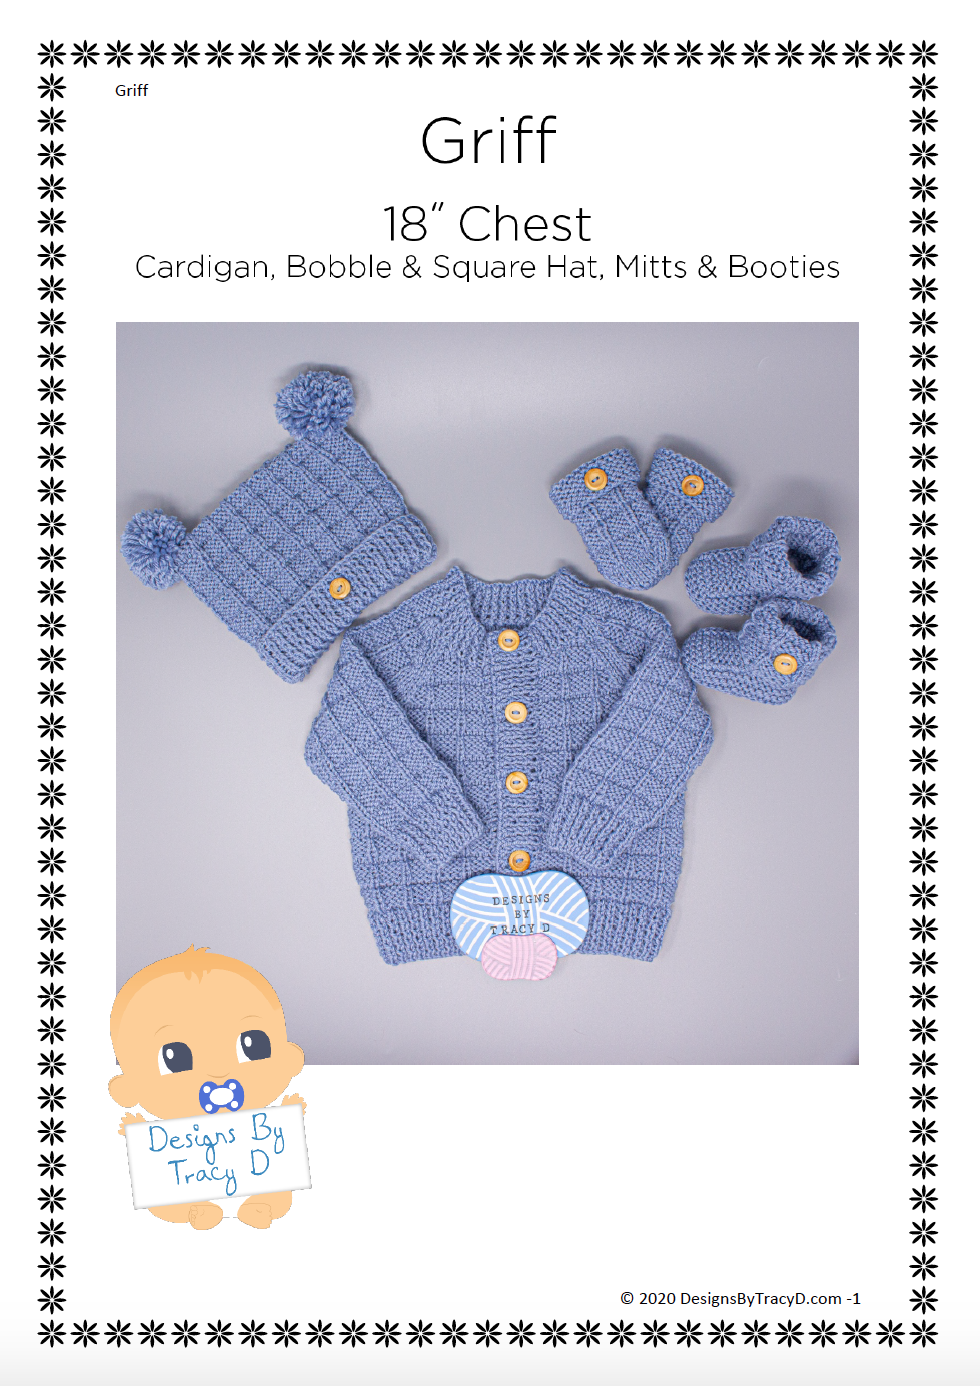 87. Griff (Unisex) - Download - Designs By Tracy D